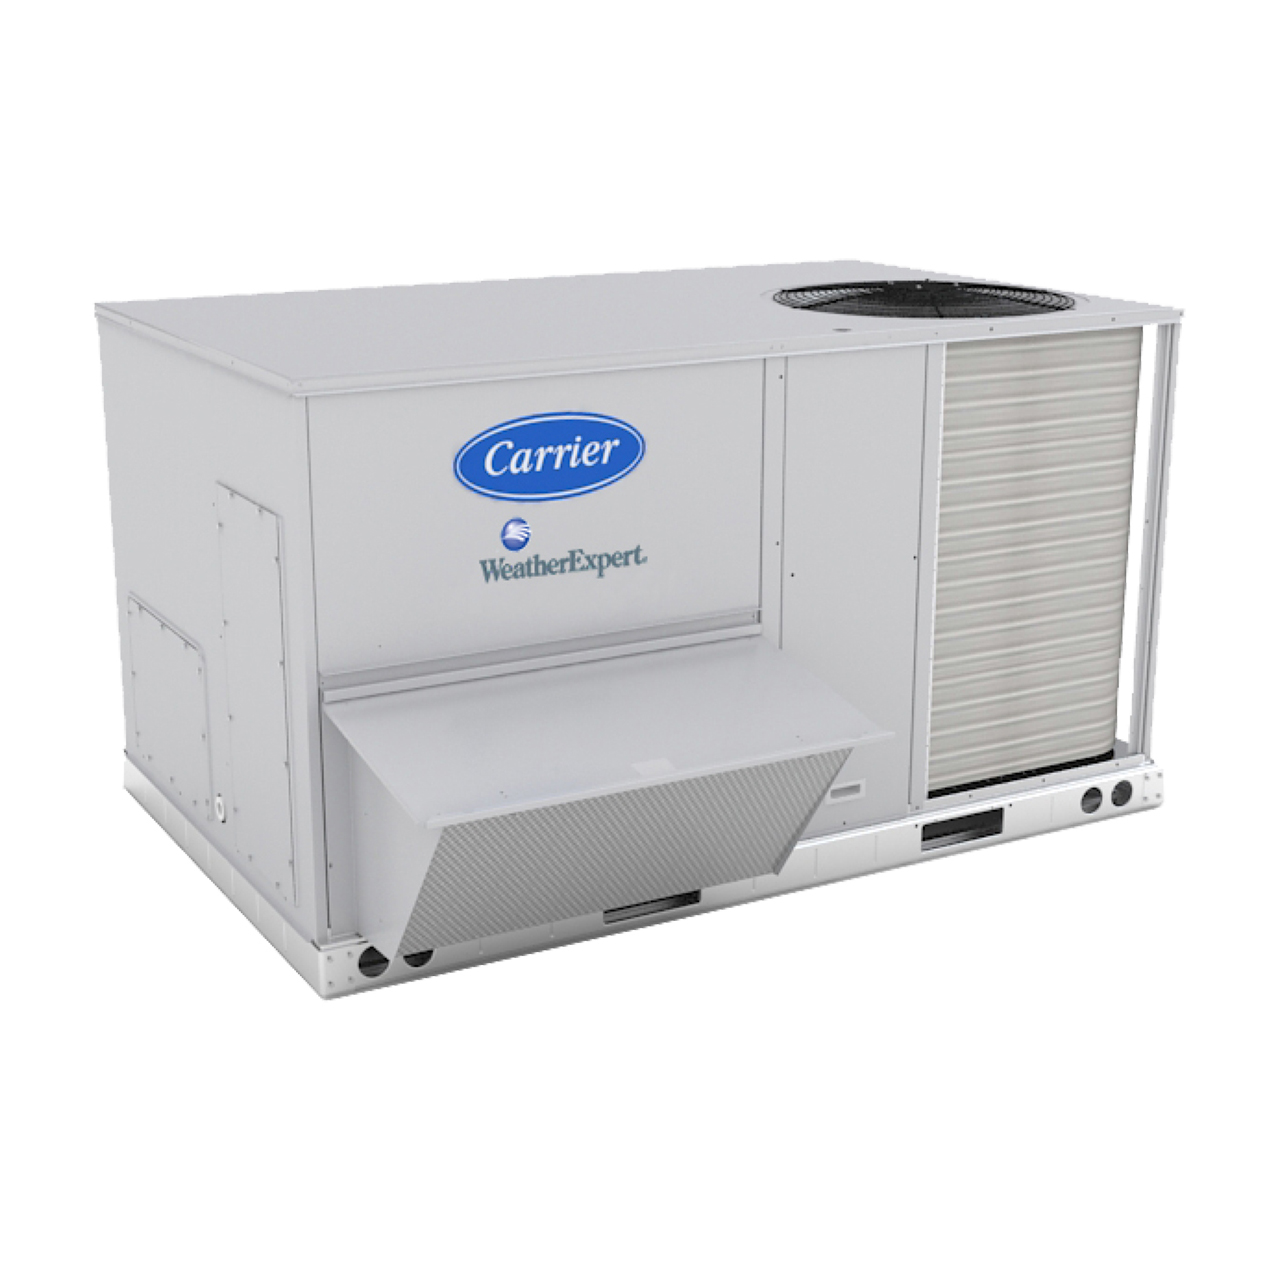 carrier-50lc-single-packaged-rooftop-unit-a Mobile Home Hvac Package Units on mobile home hvac, mobile home heat, mobile home underpinning, mobile home water heater, mobile home insulation, mobile home heating, mobile shipping container home, mobile home service, mobile home installation, mobile home ac, mobile home exhaust fan, mobile home condenser, mobile home air conditioner, mobile home ventilation, mobile medical unit, mobile home split unit, mobile home a c units, mobile home trailer, mobile home electrical, mobile home air handler,